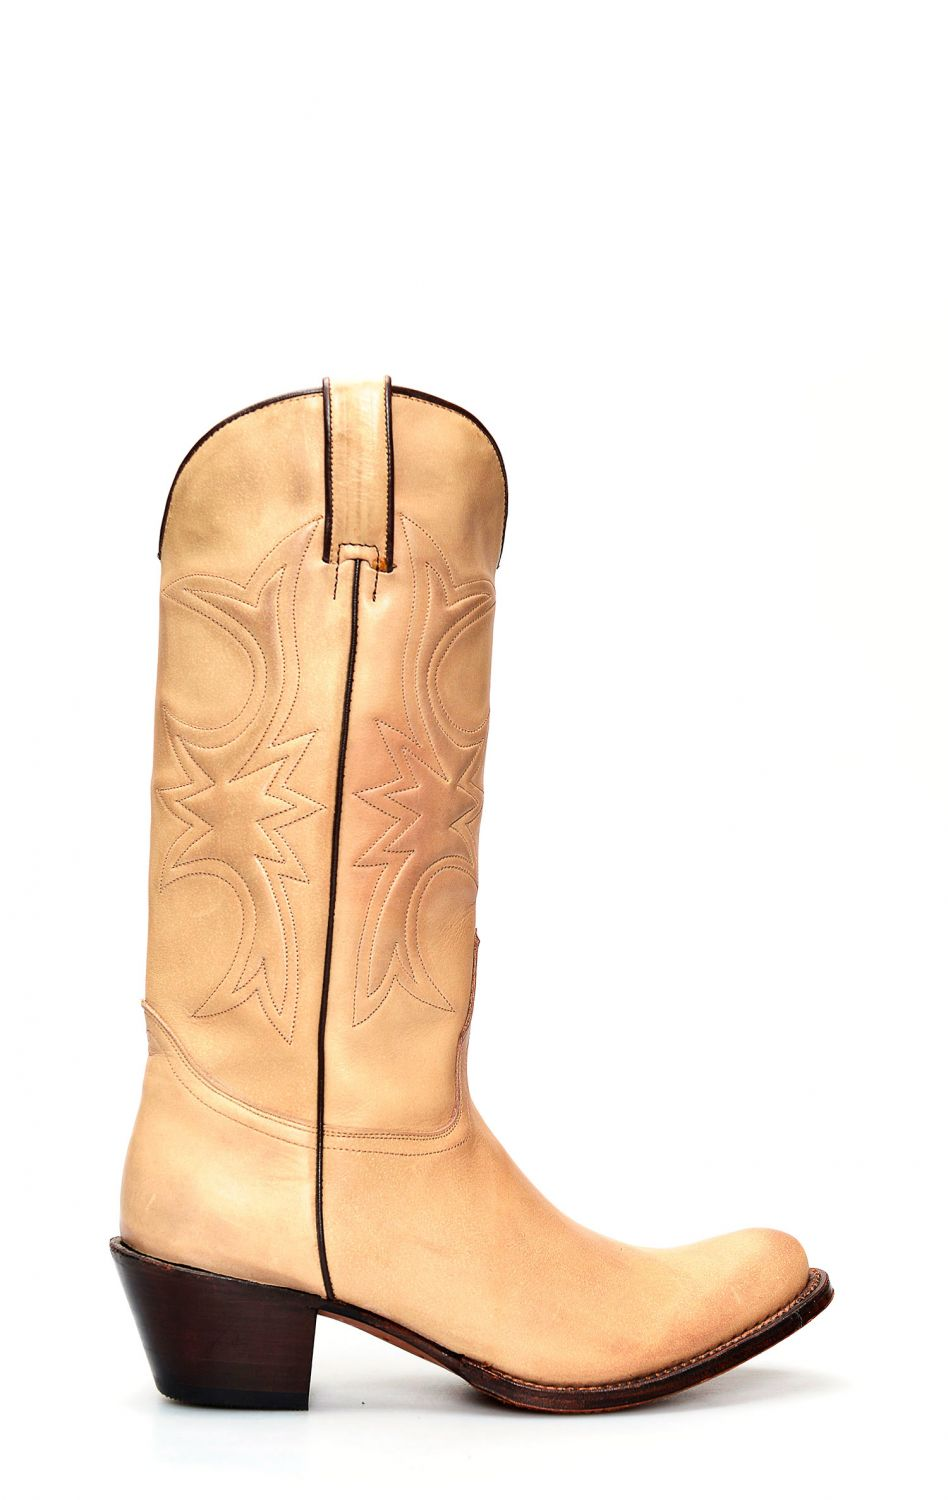 9b8cf2aa9bb Tony Mora boots in light brushed leather | TM002660